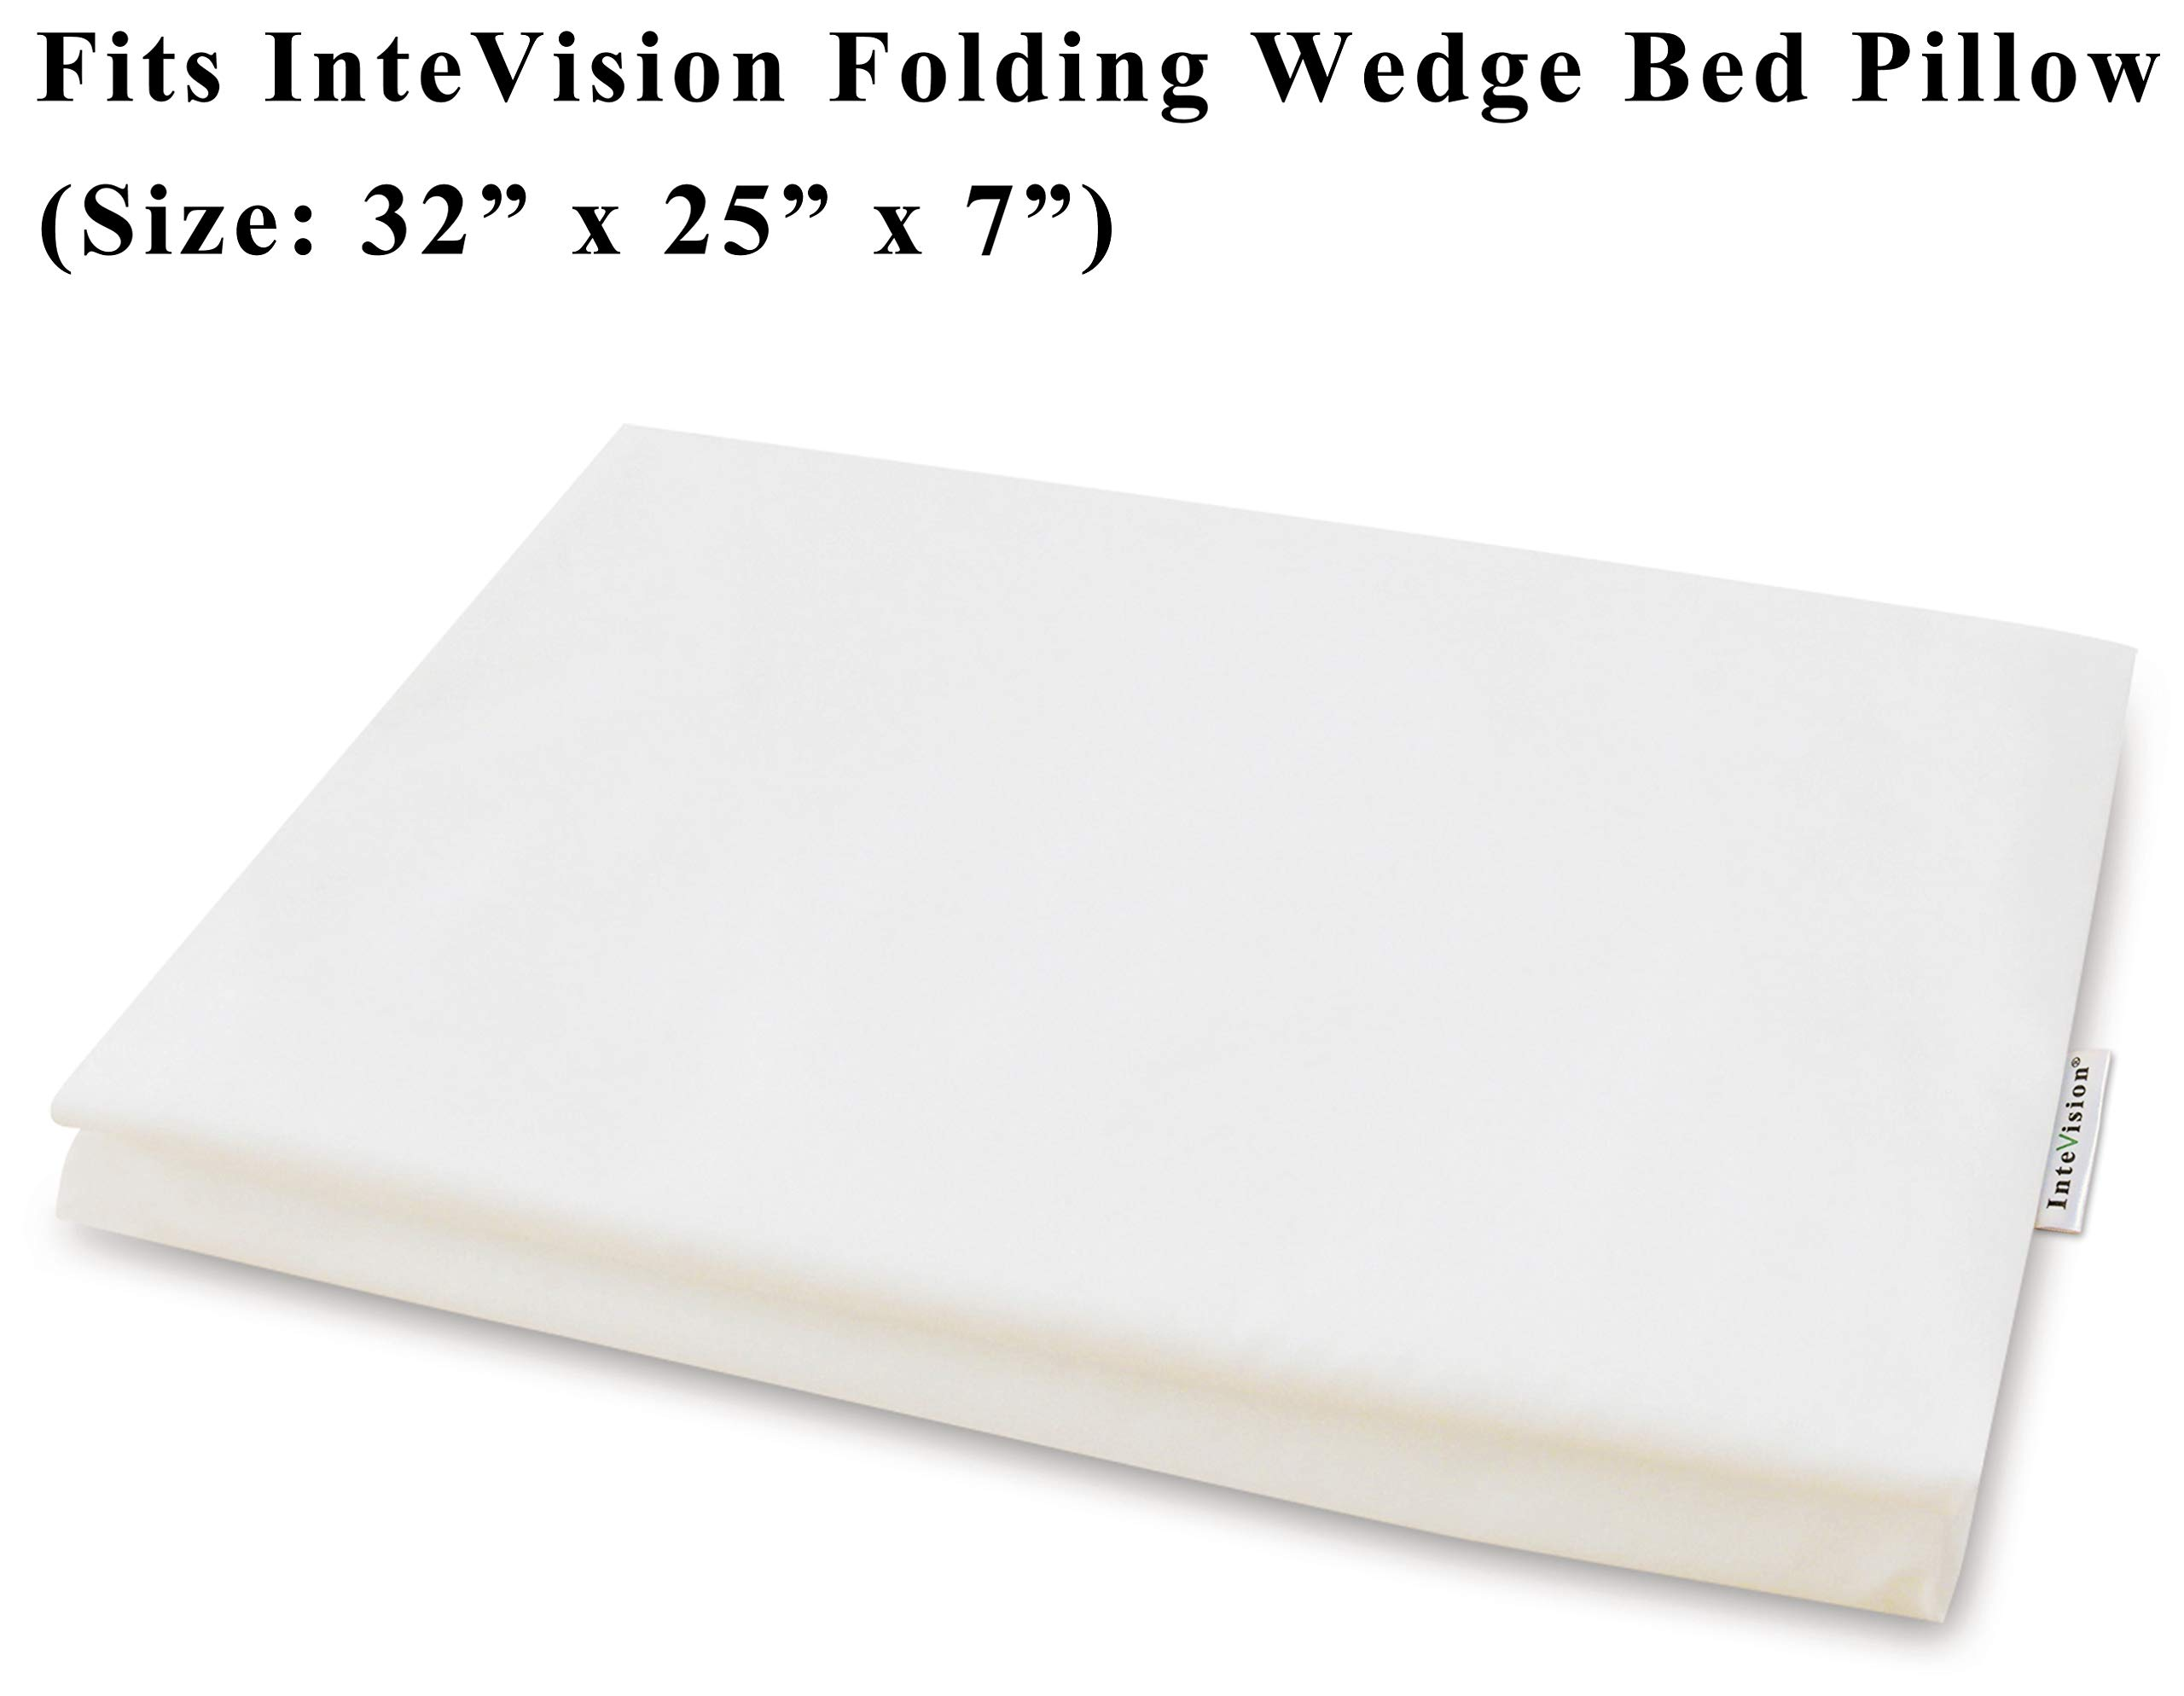 InteVision 400 Thread Count, 100% Egyptian Cotton Pillowcase. Designed to Fit the InteVision Folding Wedge Bed Pillow (32'' x 25'' x 7'')